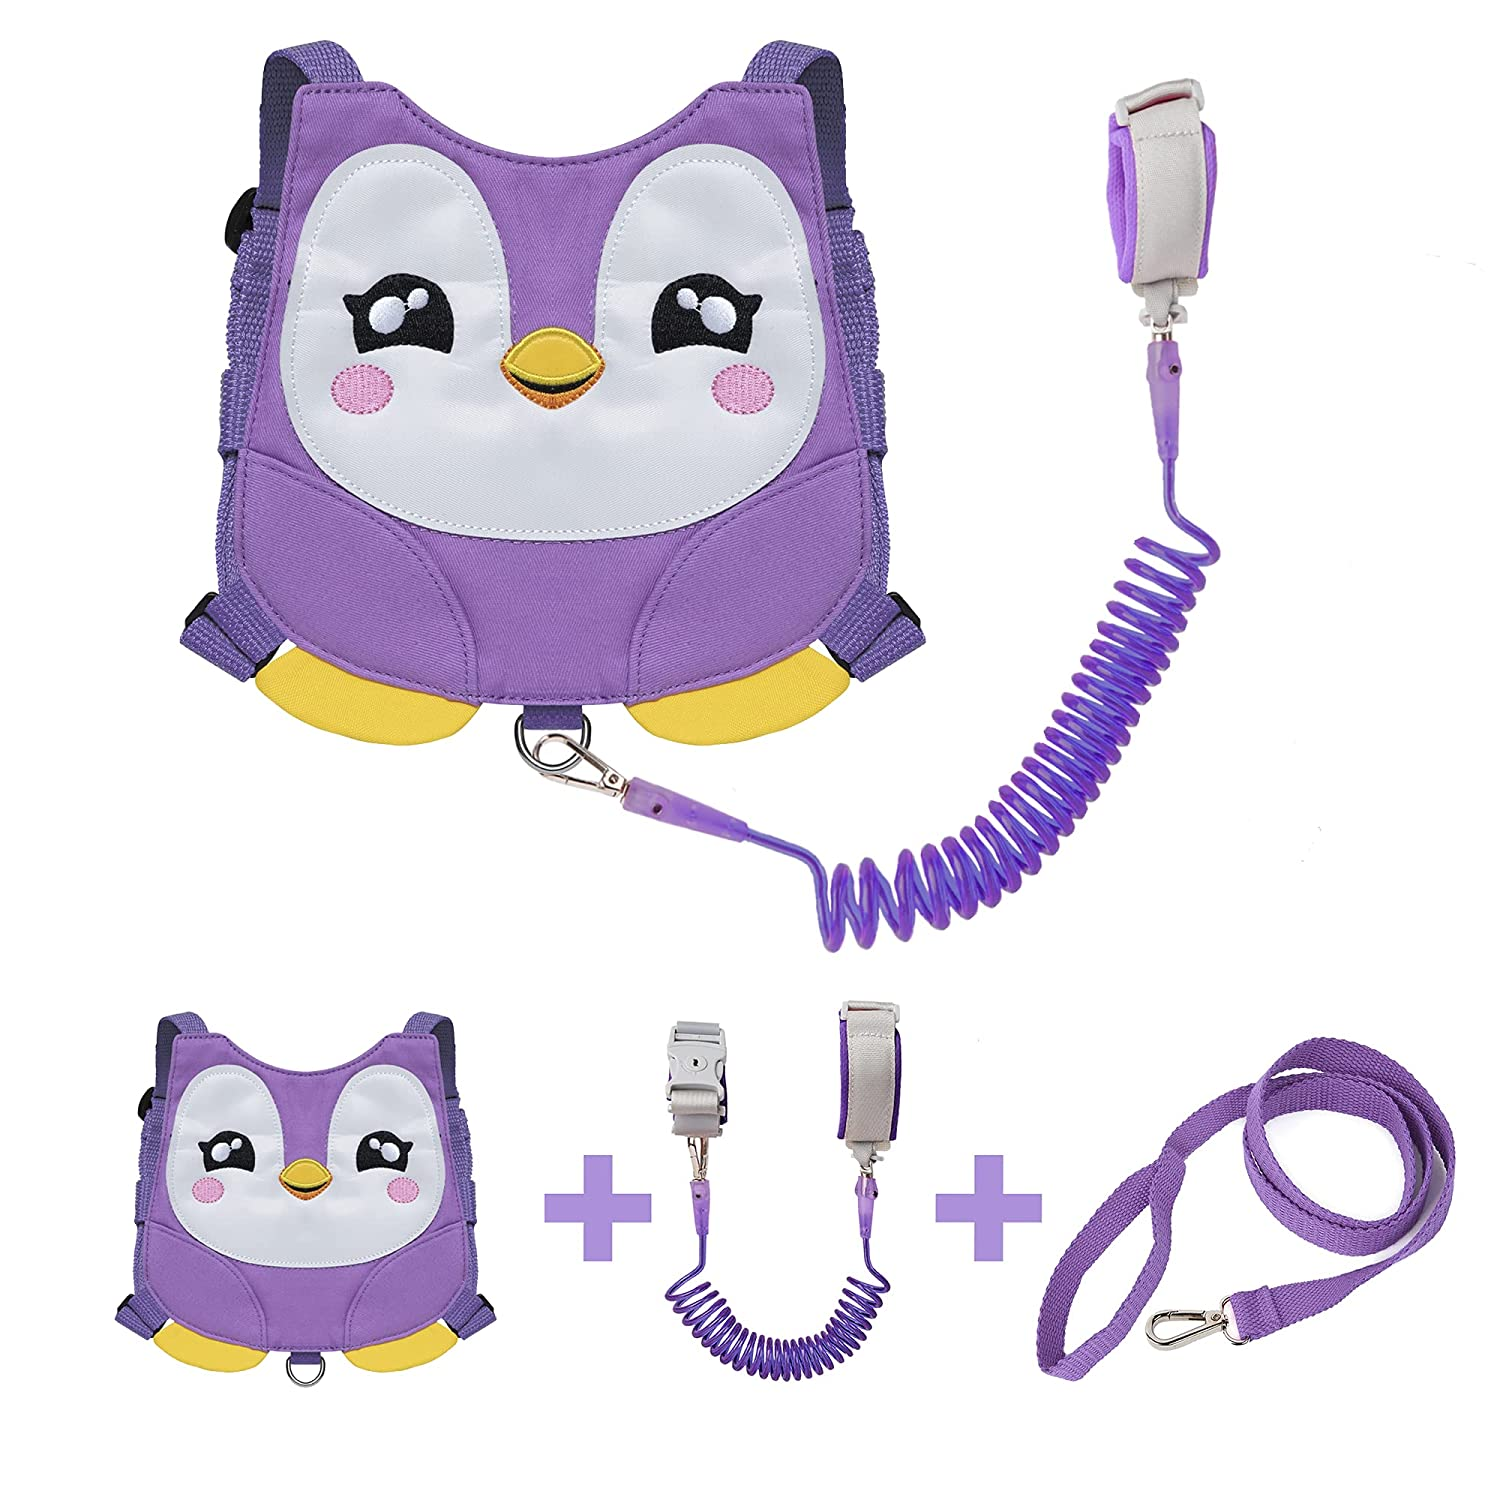 EPLAZA Penguin-Like Toddler Harnesses with Leashes Anti Lost Wrist Link Wristband for 1.5 to 3 Years Kids Girls Boys Safety (Penguin Purple)